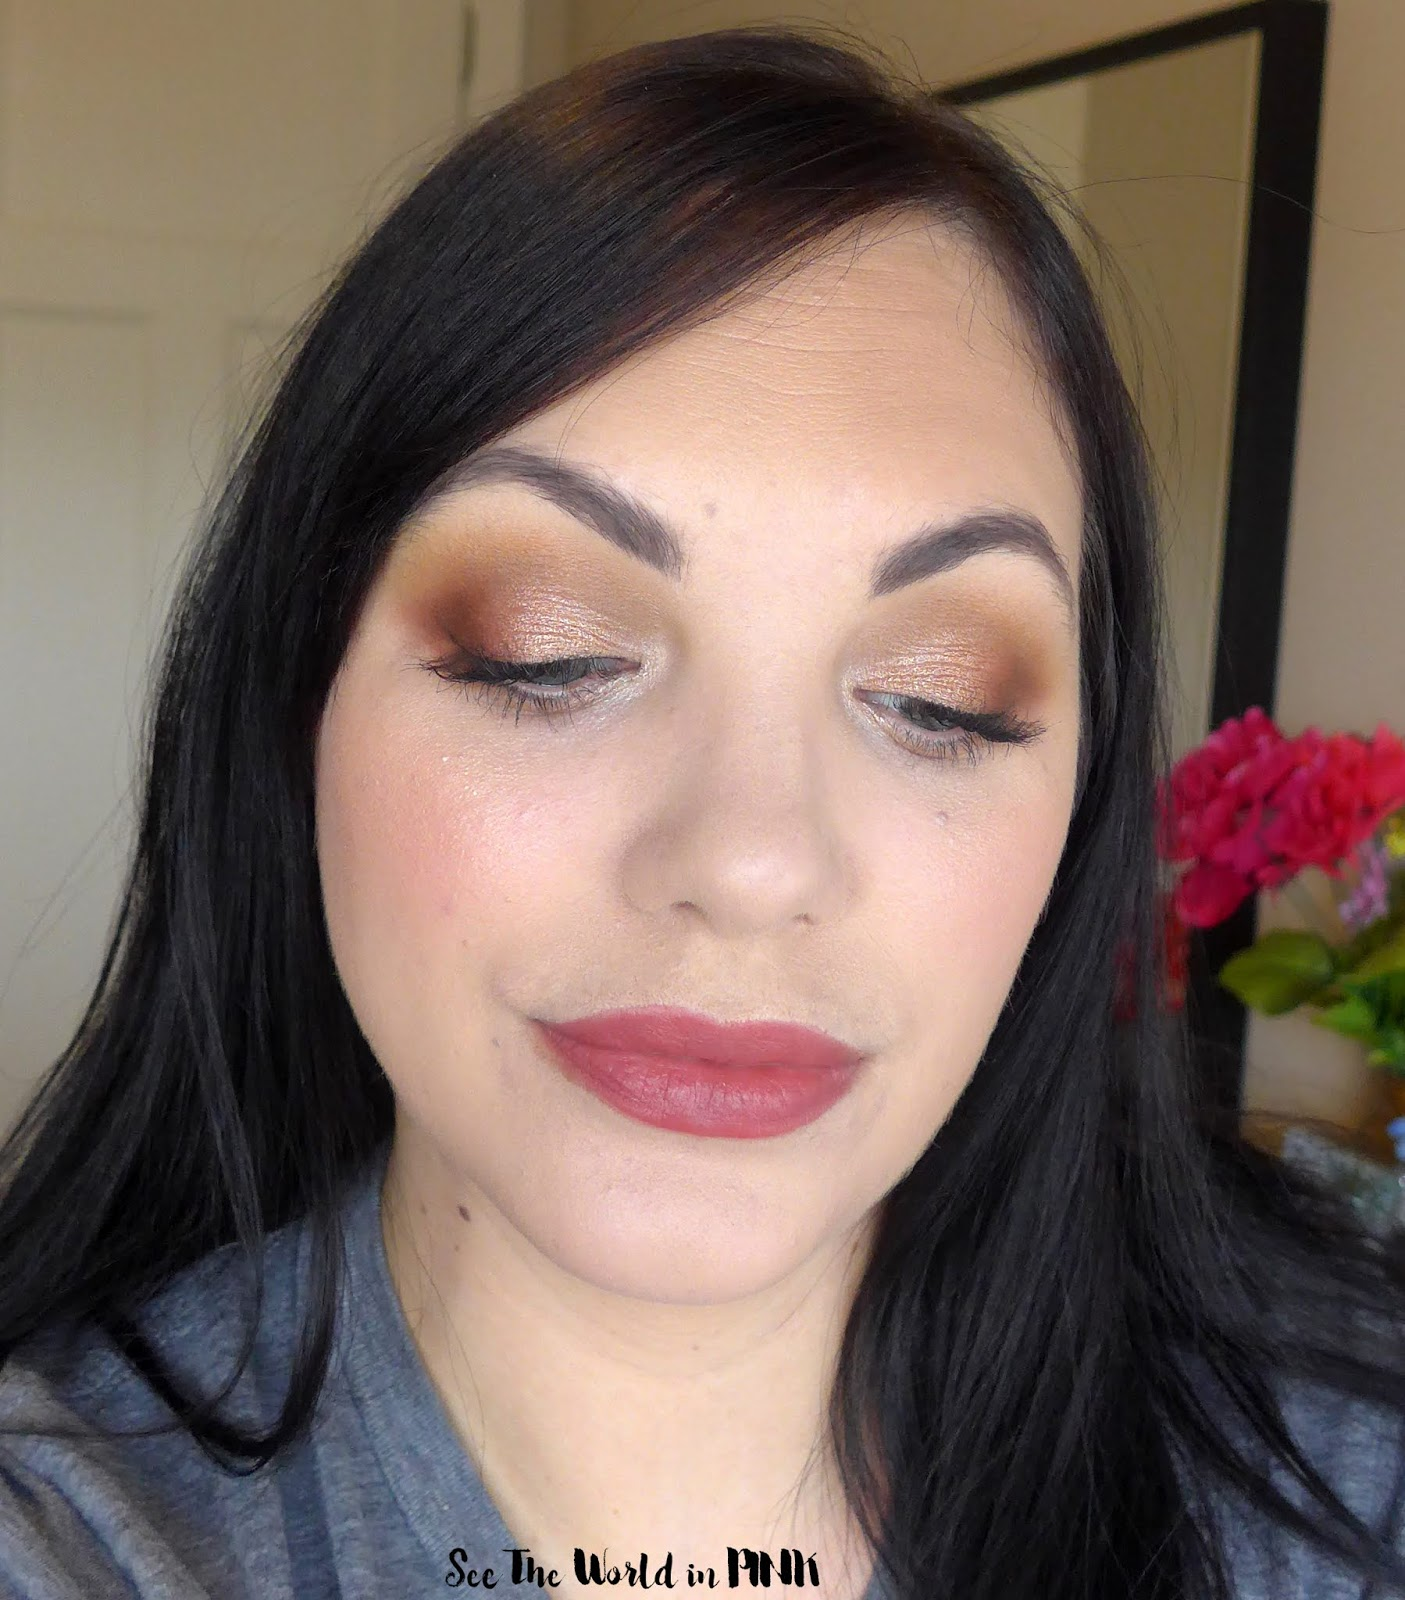 Too Faced Cosmetics Hot Buttered Rum Palette - Try-on, Swatches and Thoughts!